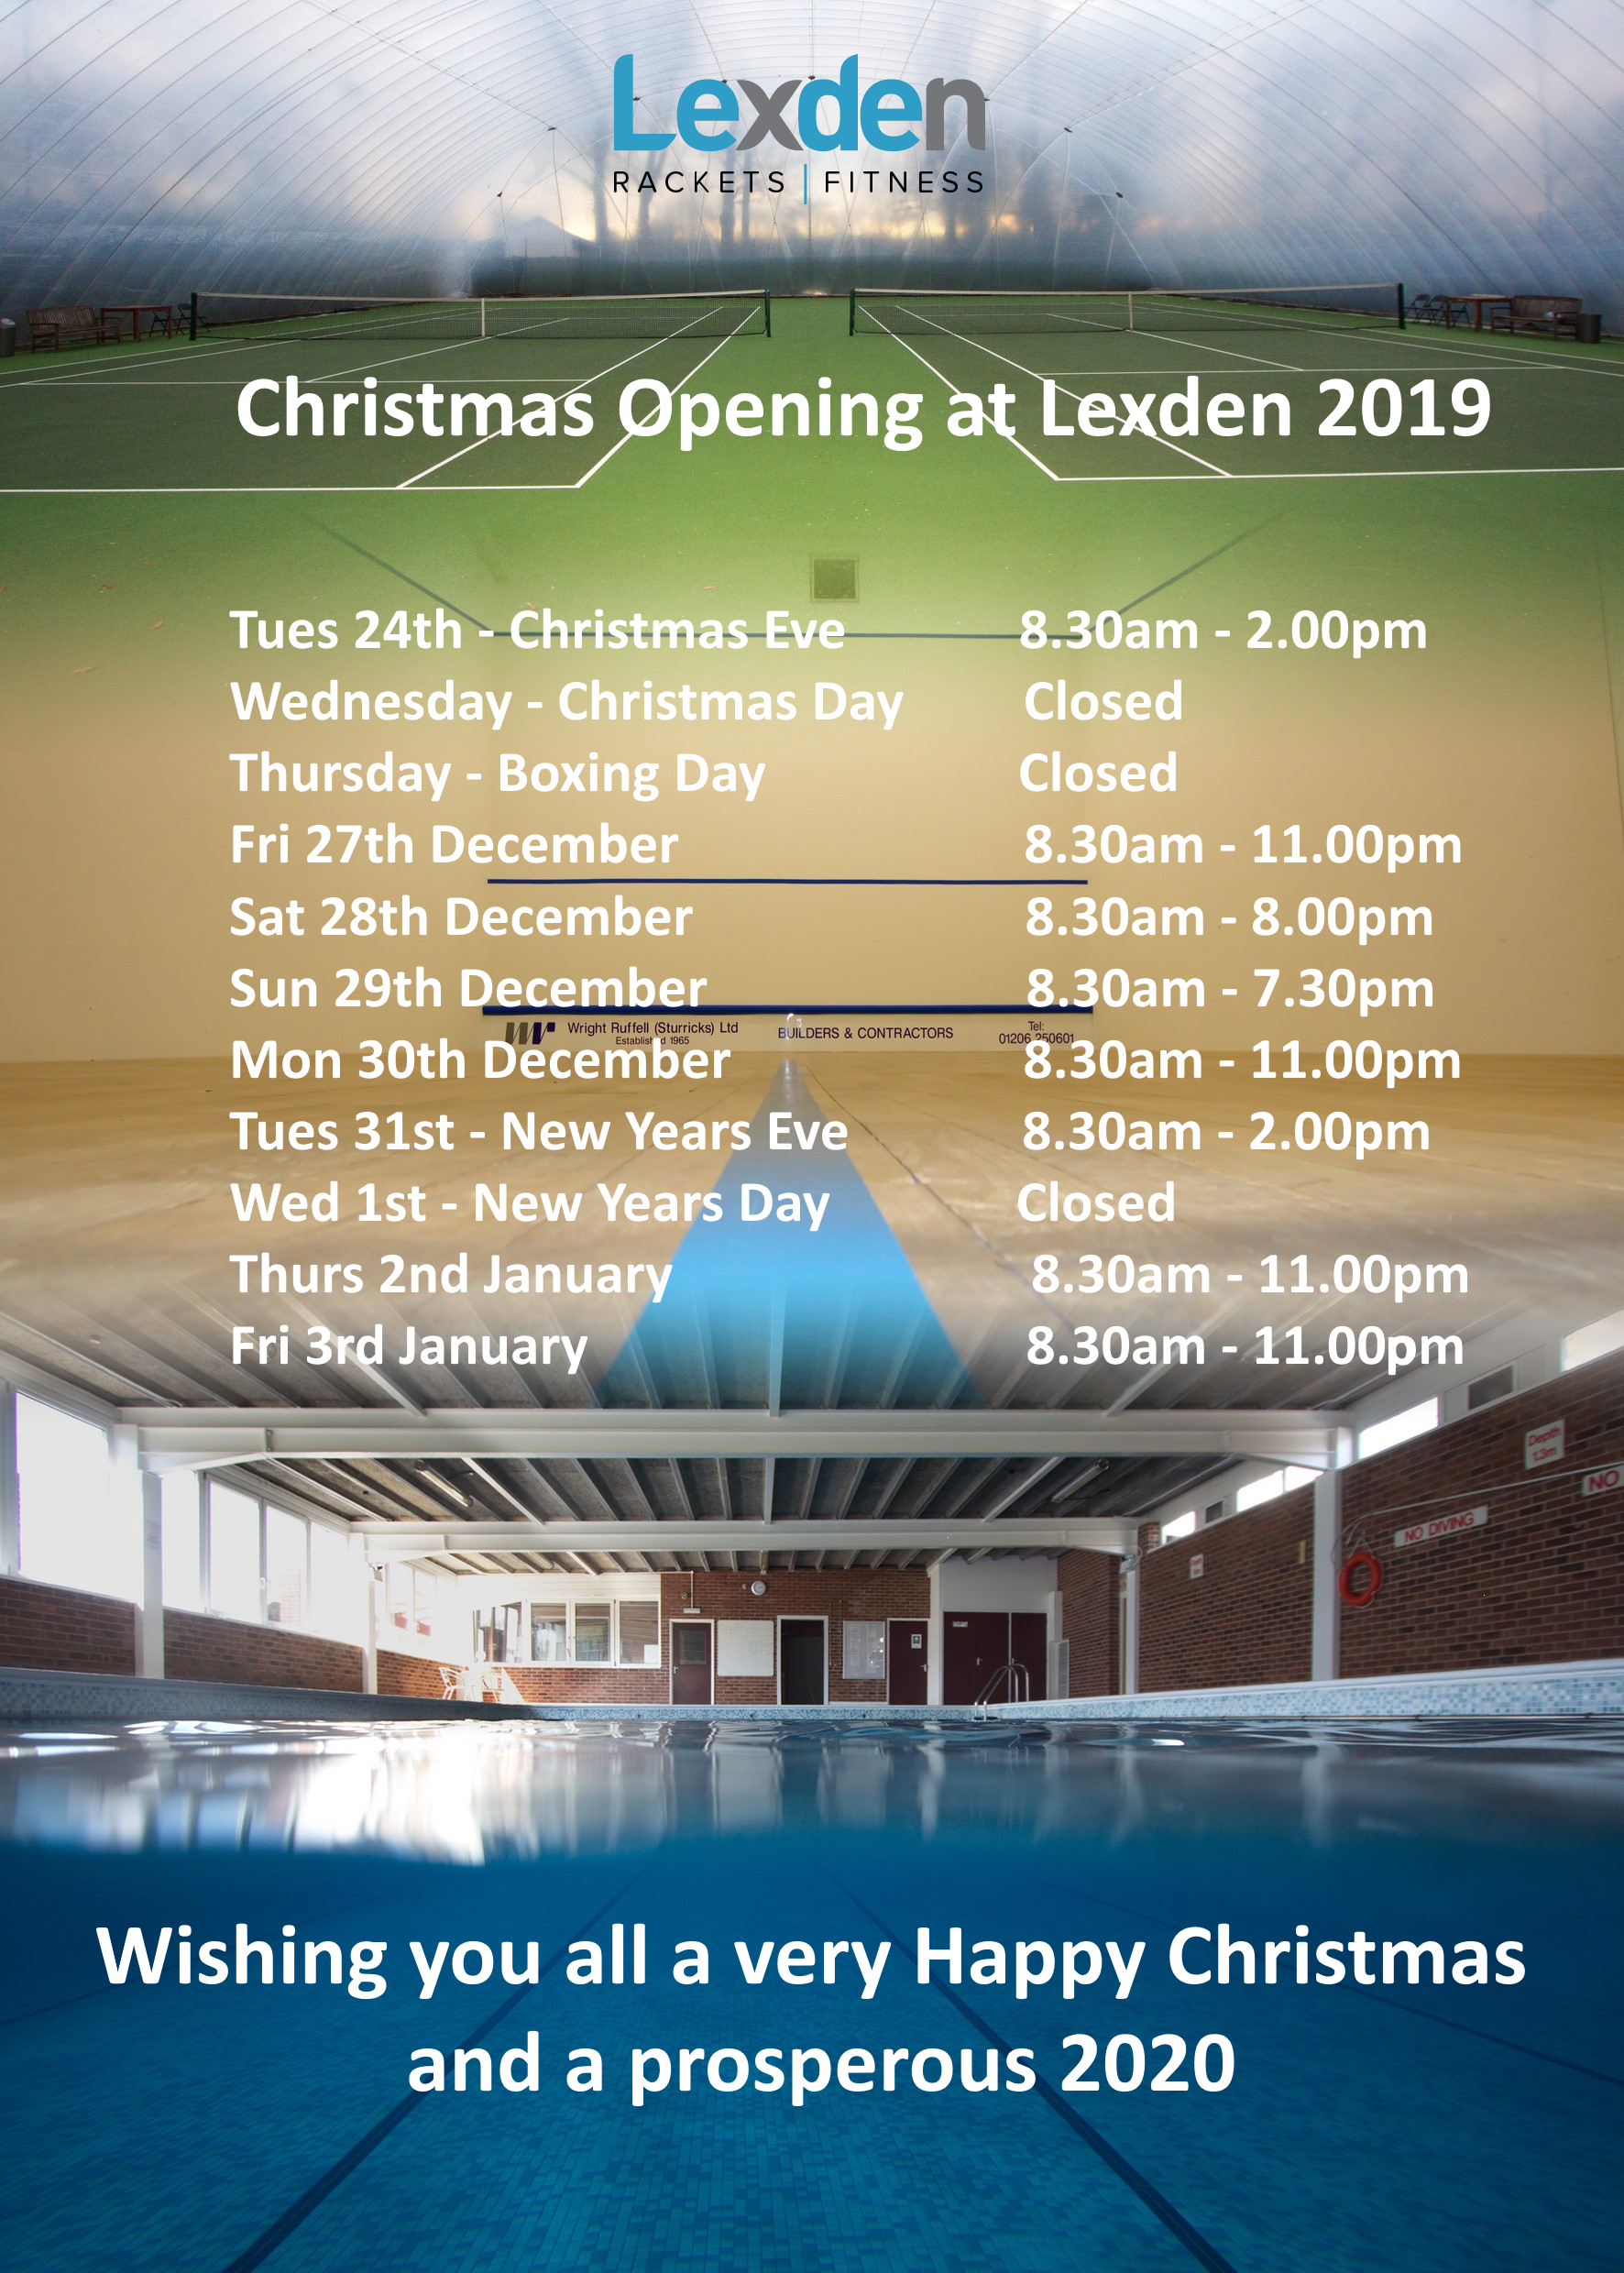 Christmas Opening at Lexden 2019